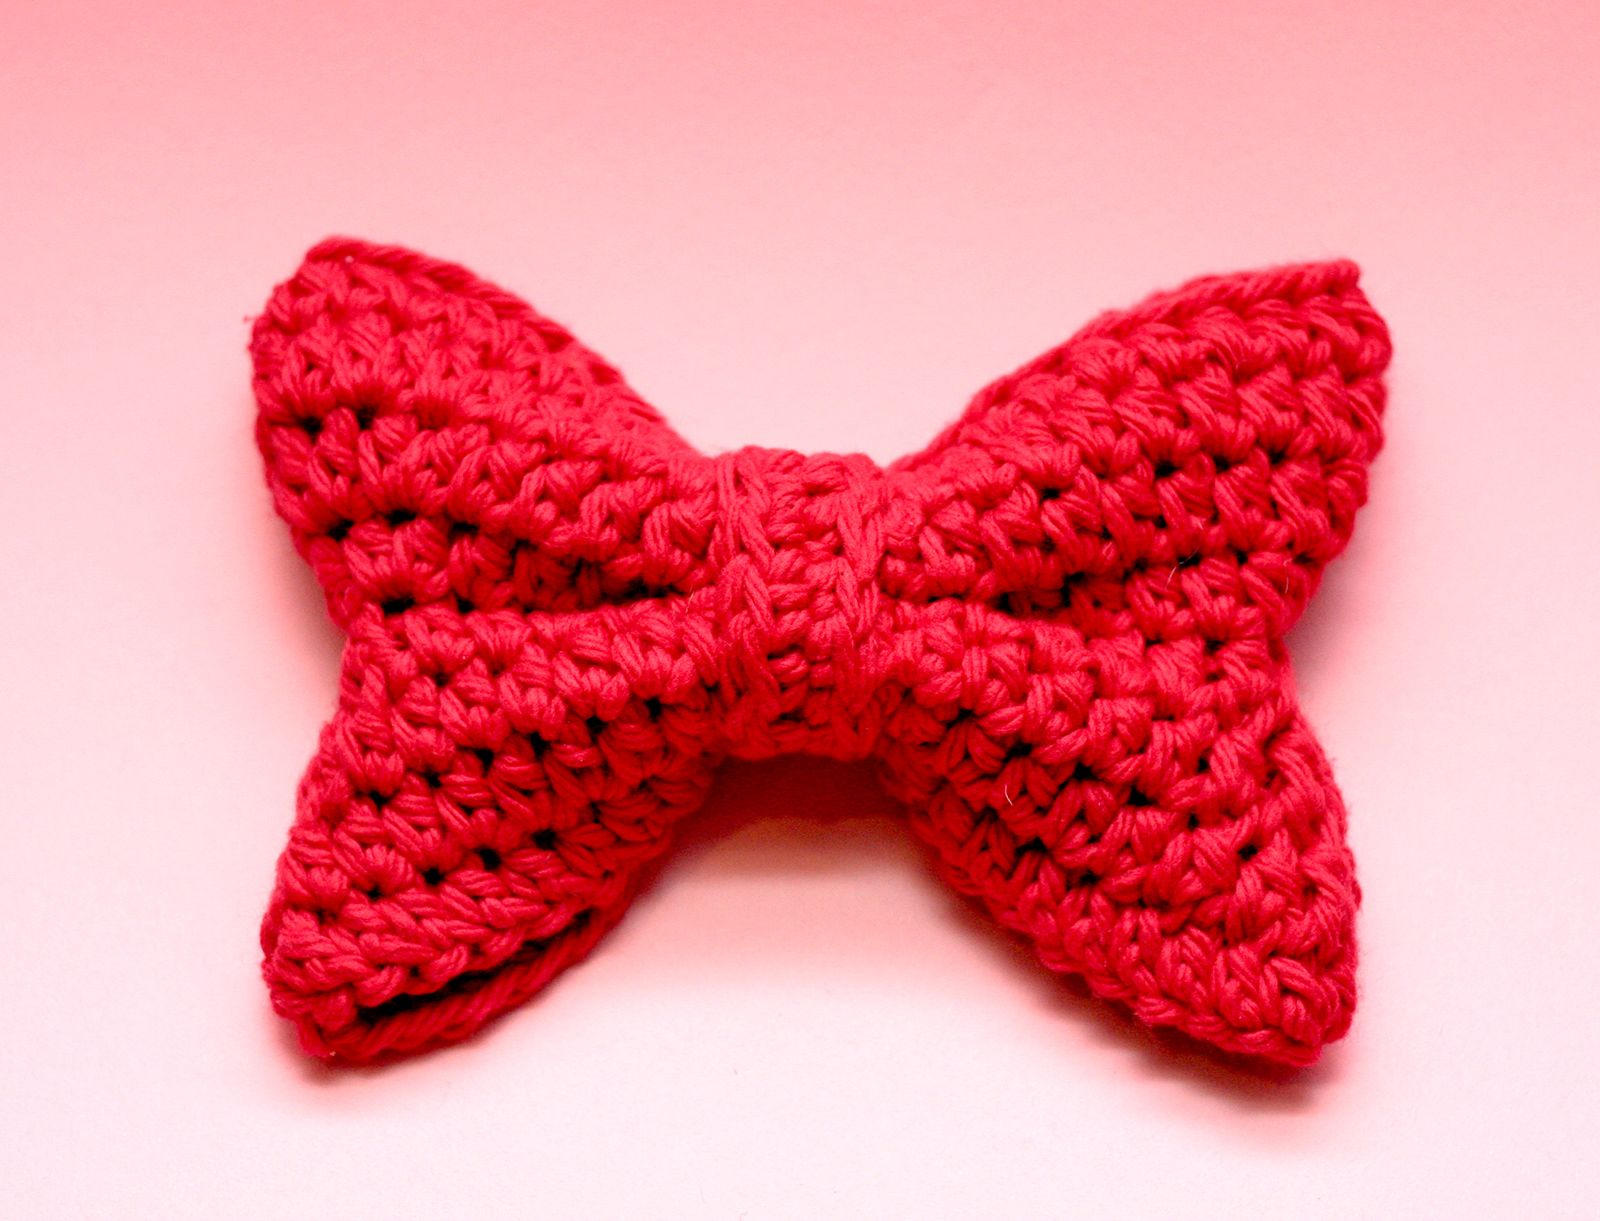 Cute Puffy Bow Crochet Pattern #crochetbowpattern